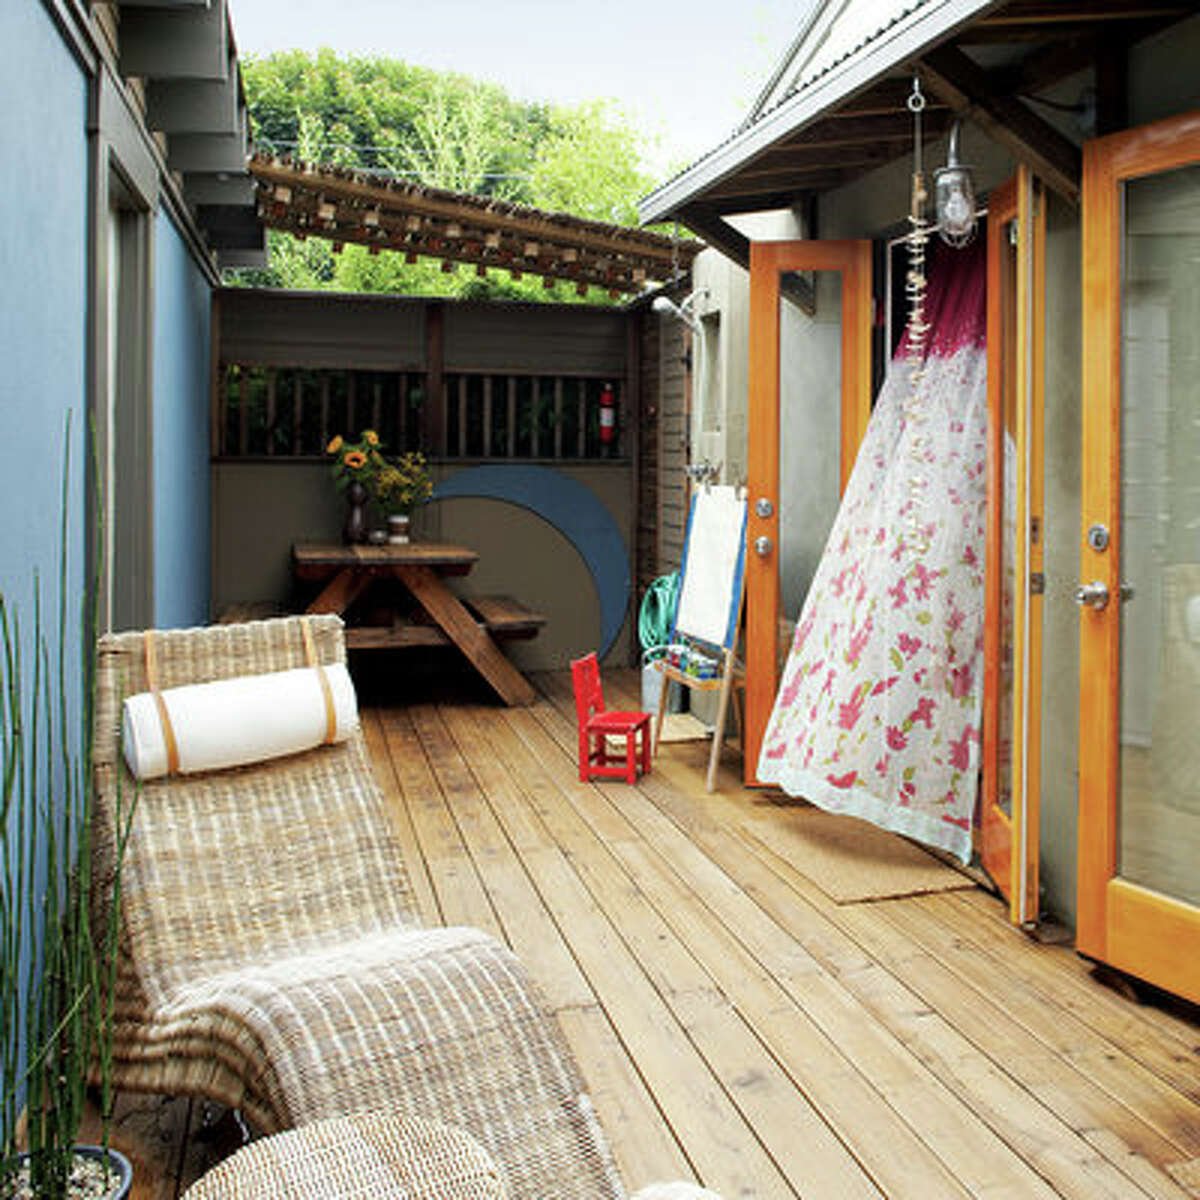 Playroom outdoors Before this deck went in, this area between the main house and garage was a repository for old appliances and other discards. Now it's a fun place to relax. The wicker chairs, seashell mobiles, and corrugated tin awnings were inspired by the homeowner's vacation in Costa Rica. More about this amazing makeover